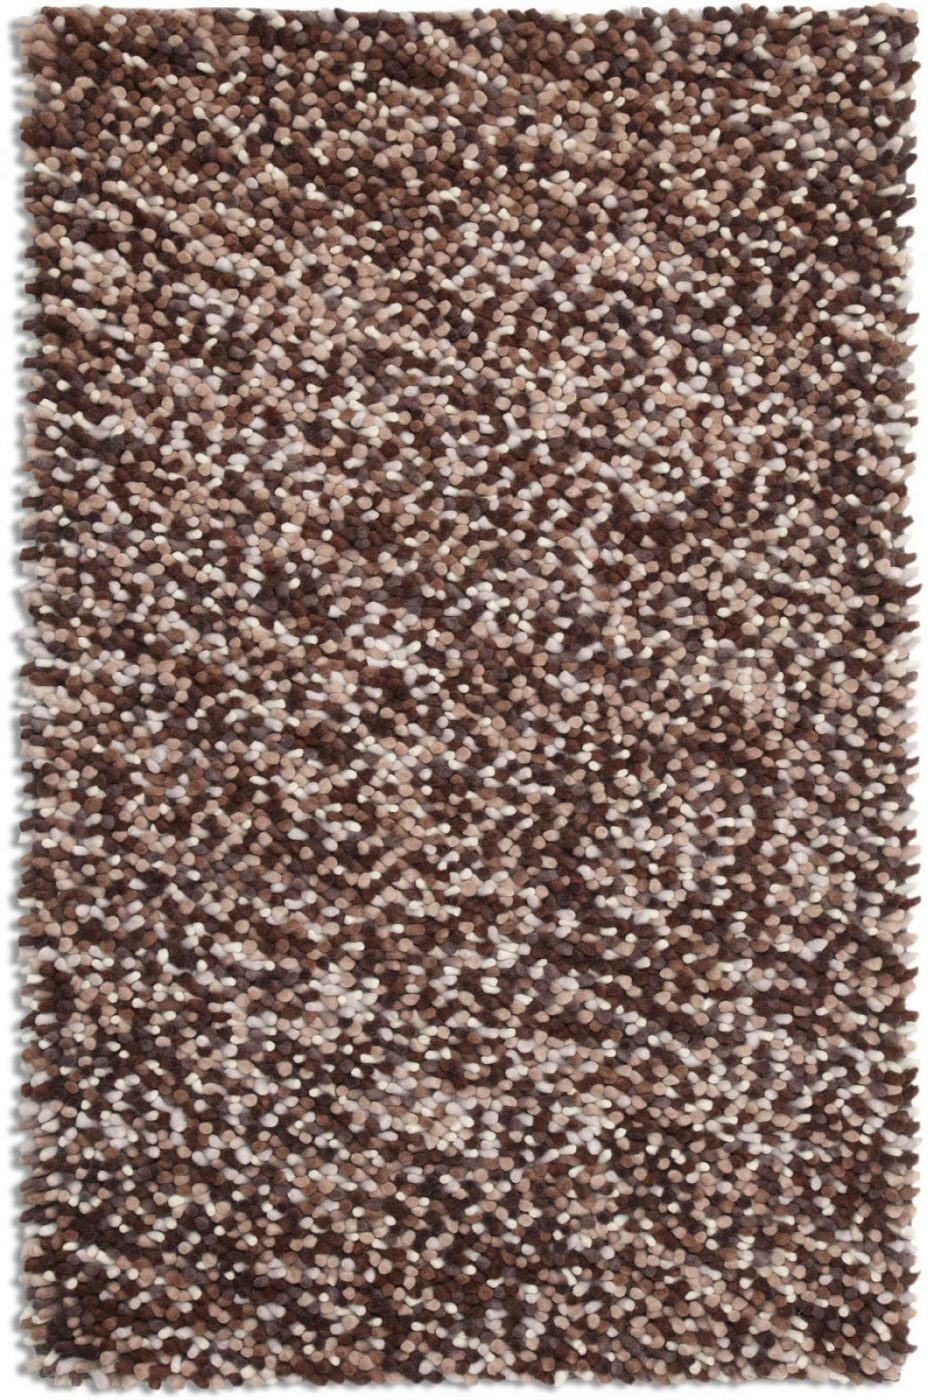 Beans BEA03 | Plantation Rug Company | Best at Flooring